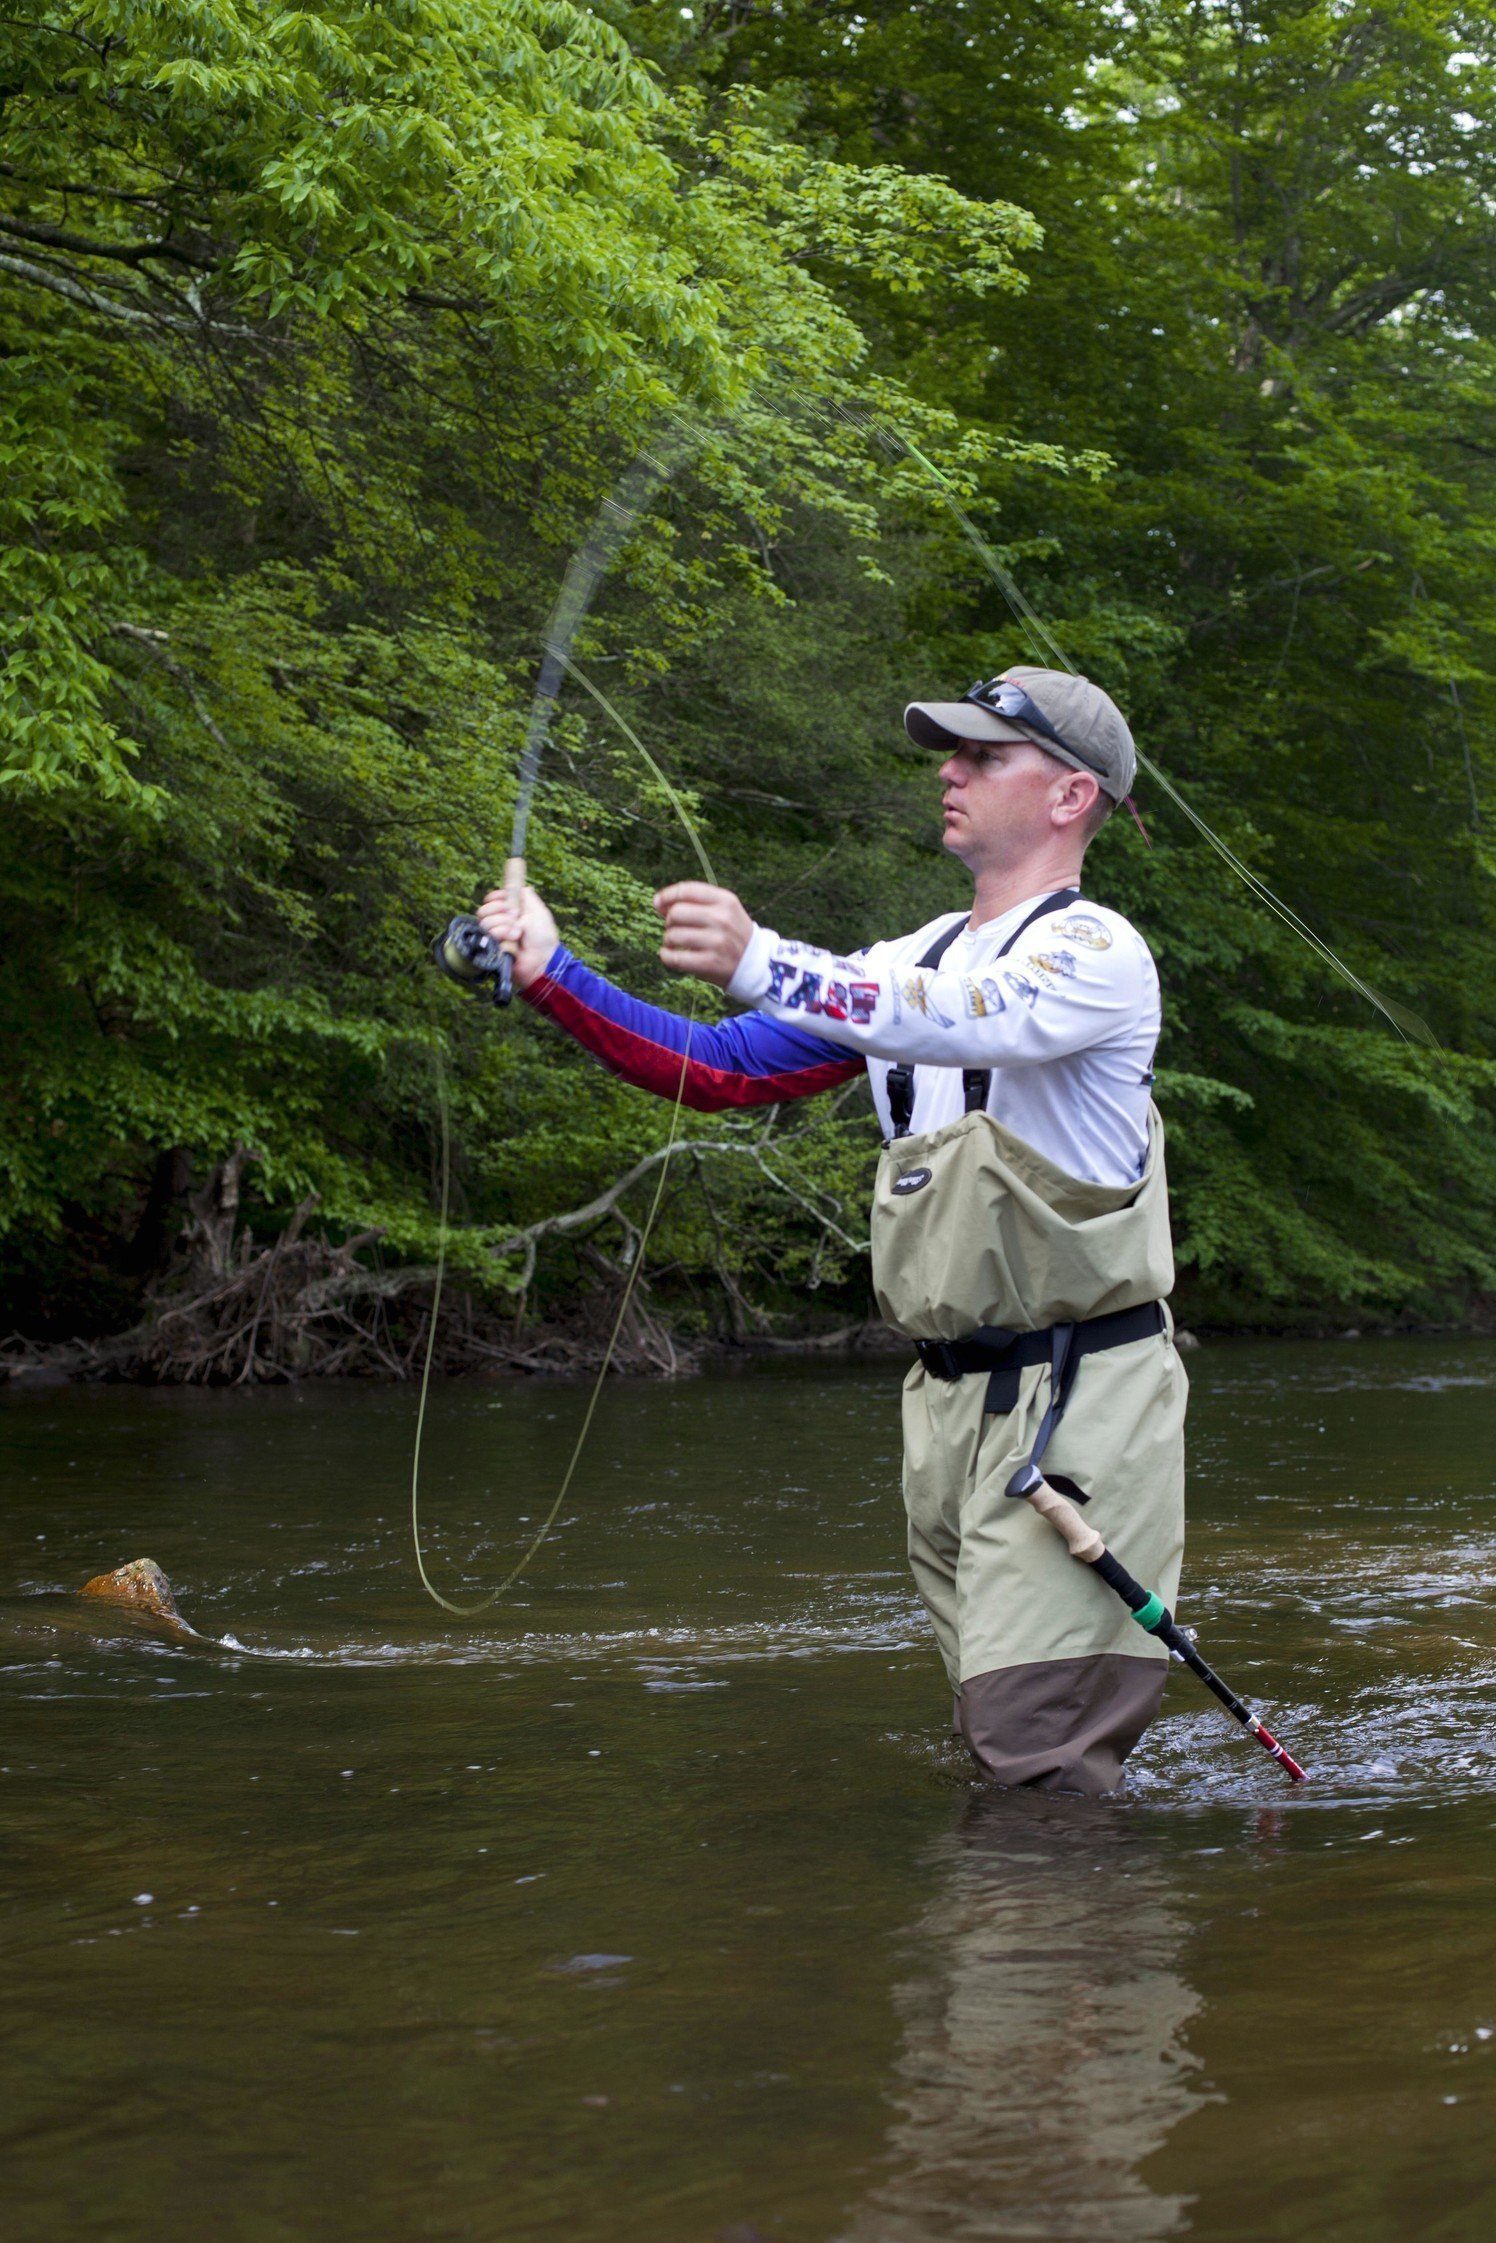 Man fly fishing in stream.